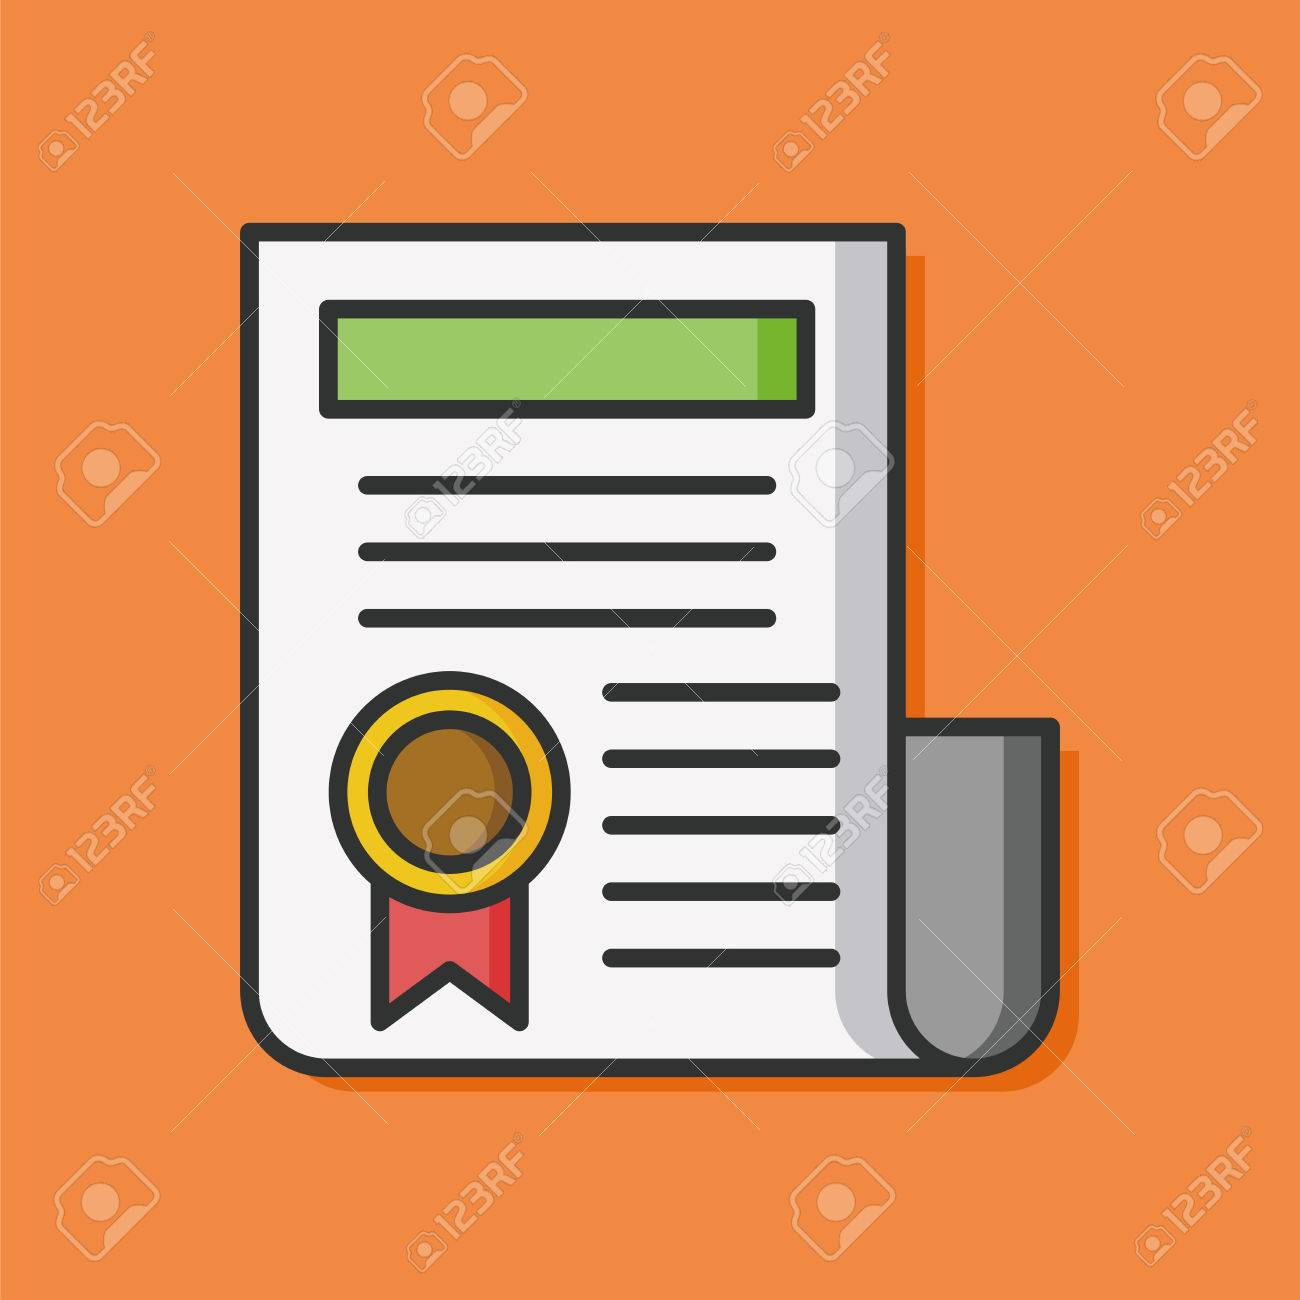 award certificate paper icon royalty free cliparts vectors and